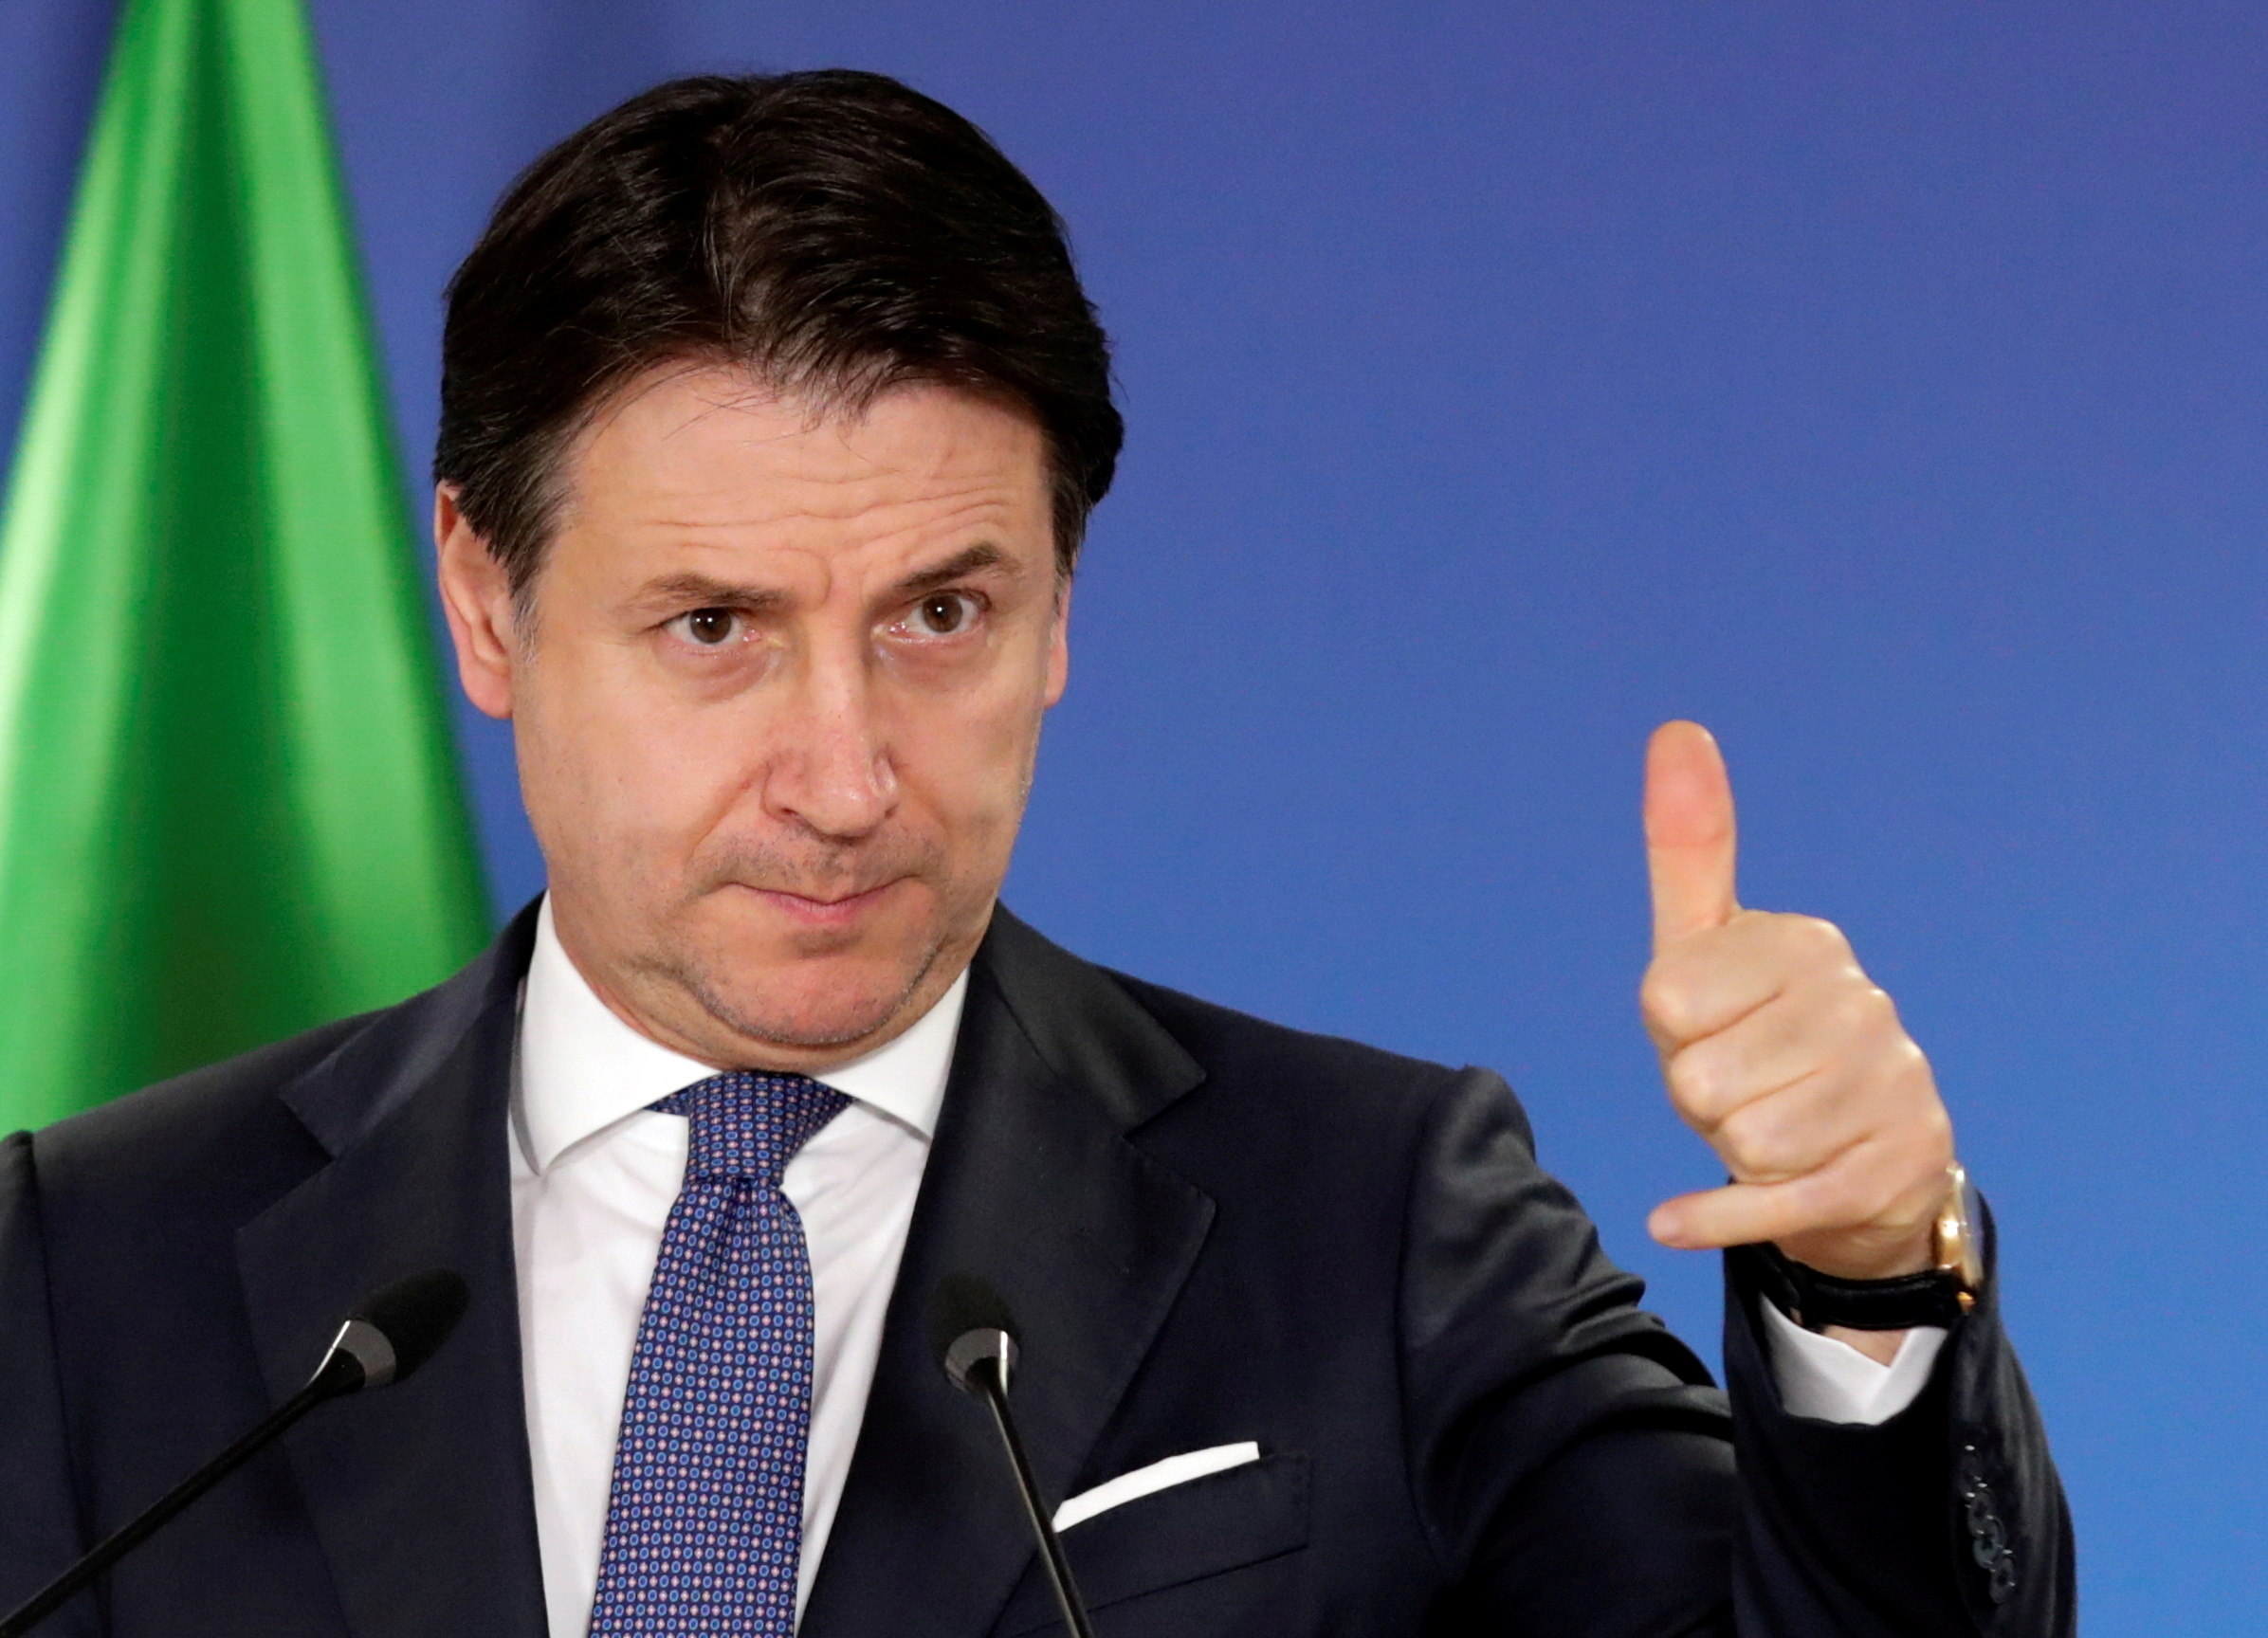 Italy's 5-star movement party in turmoil as founder criticizes ex